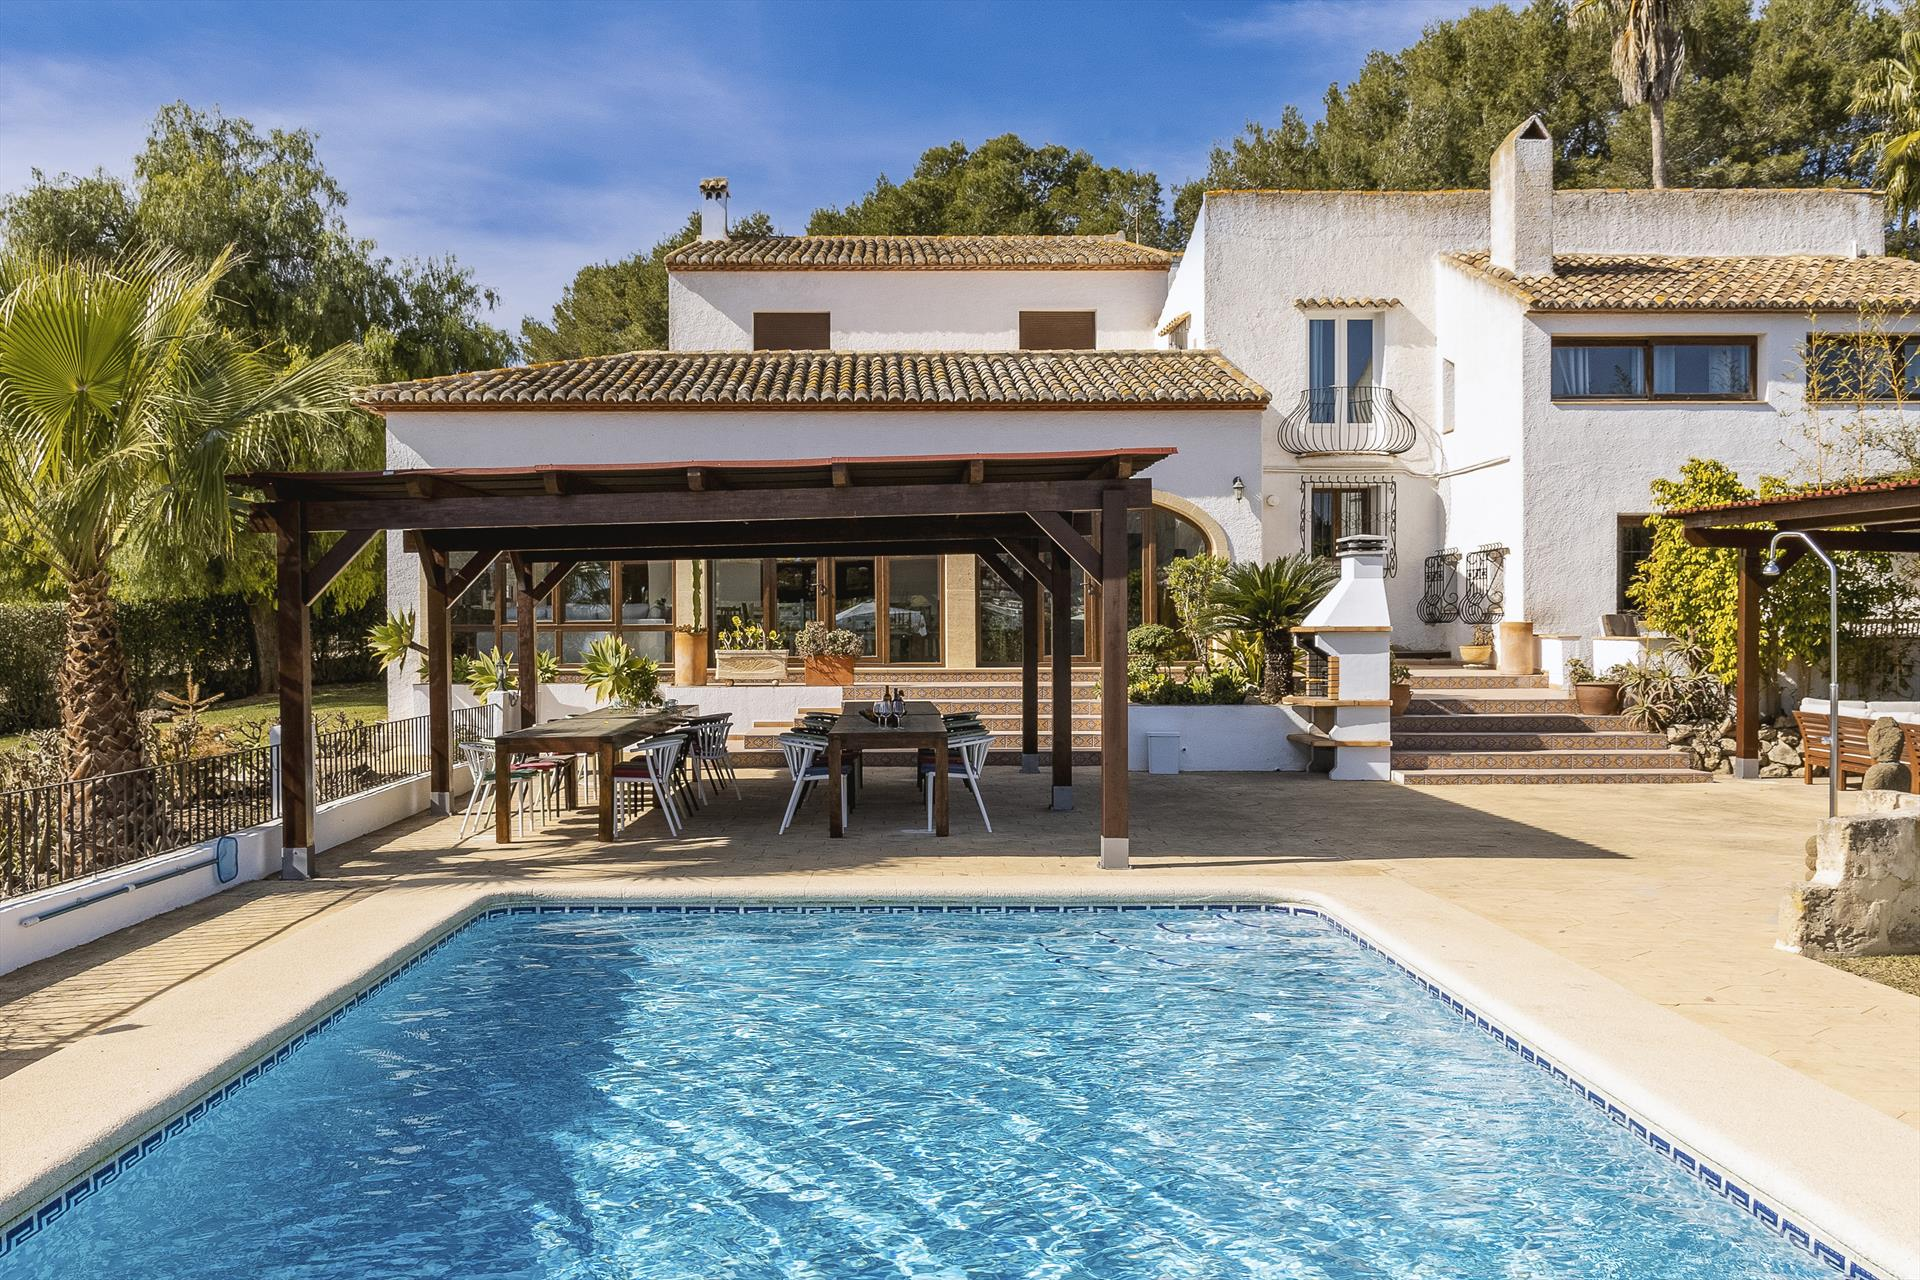 Casa Rosalia 16 pax, Wonderful and classic villa in Javea, on the Costa Blanca, Spain  with private pool for 16 persons...